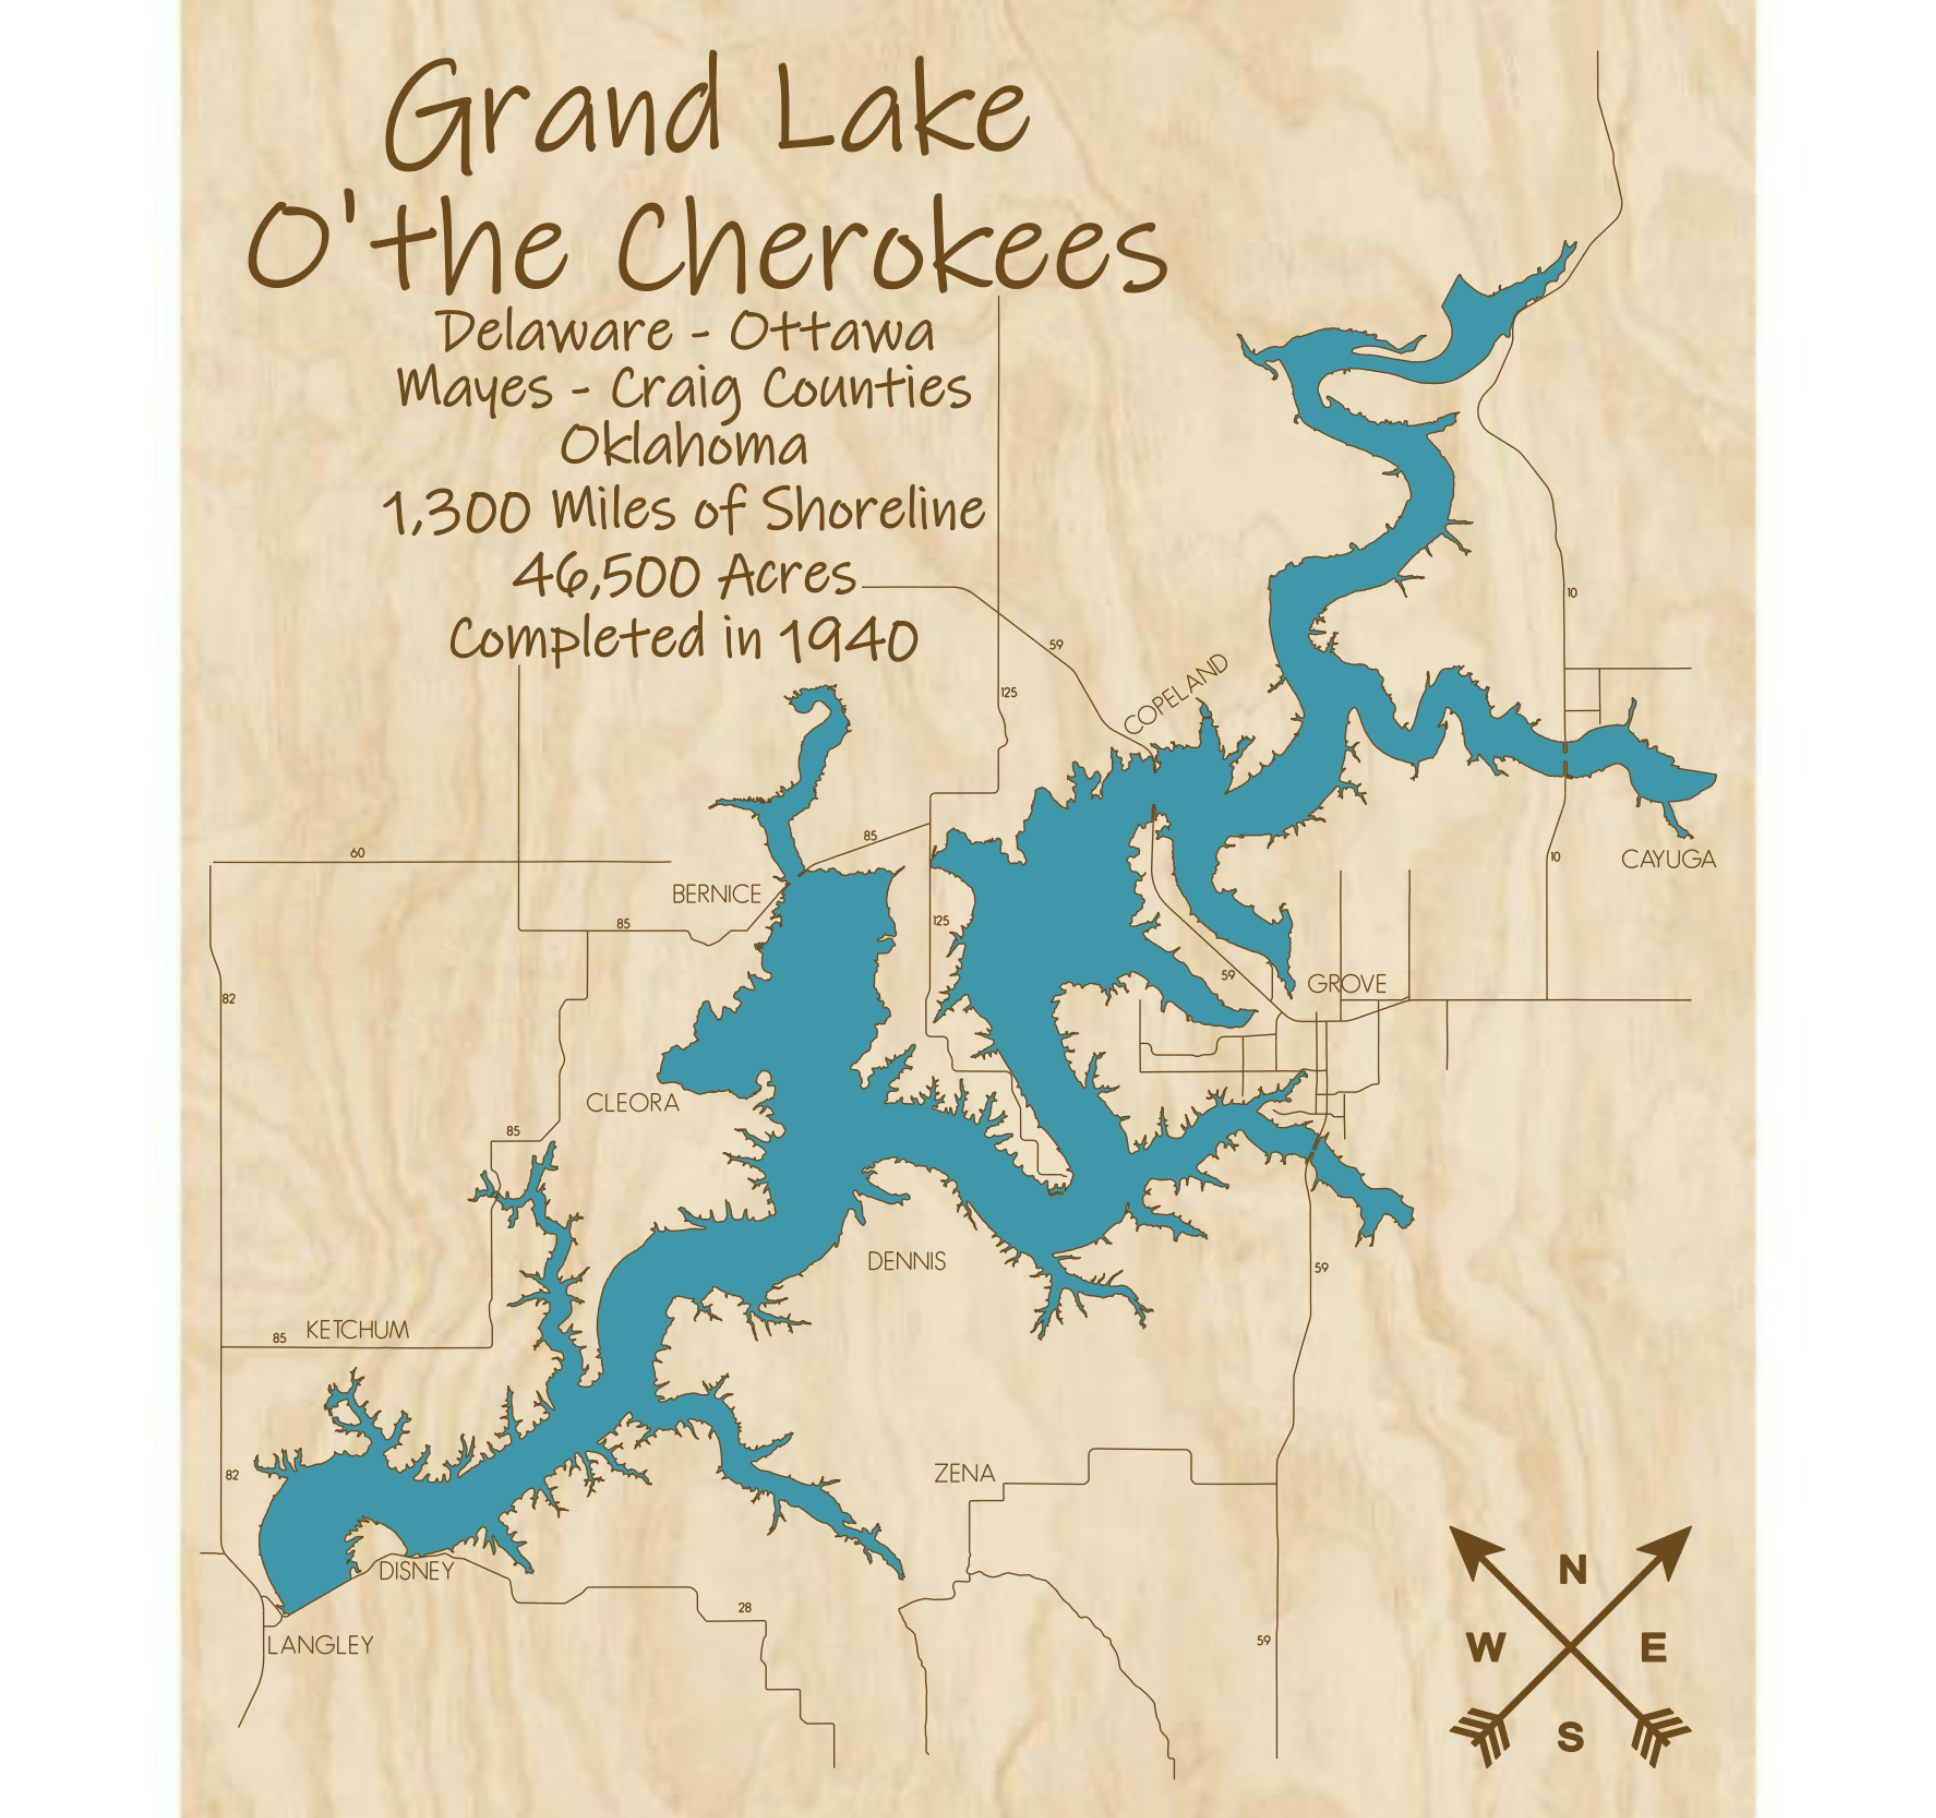 Grand Lake O'the Cherokee Multi-layered Wood Lake Map